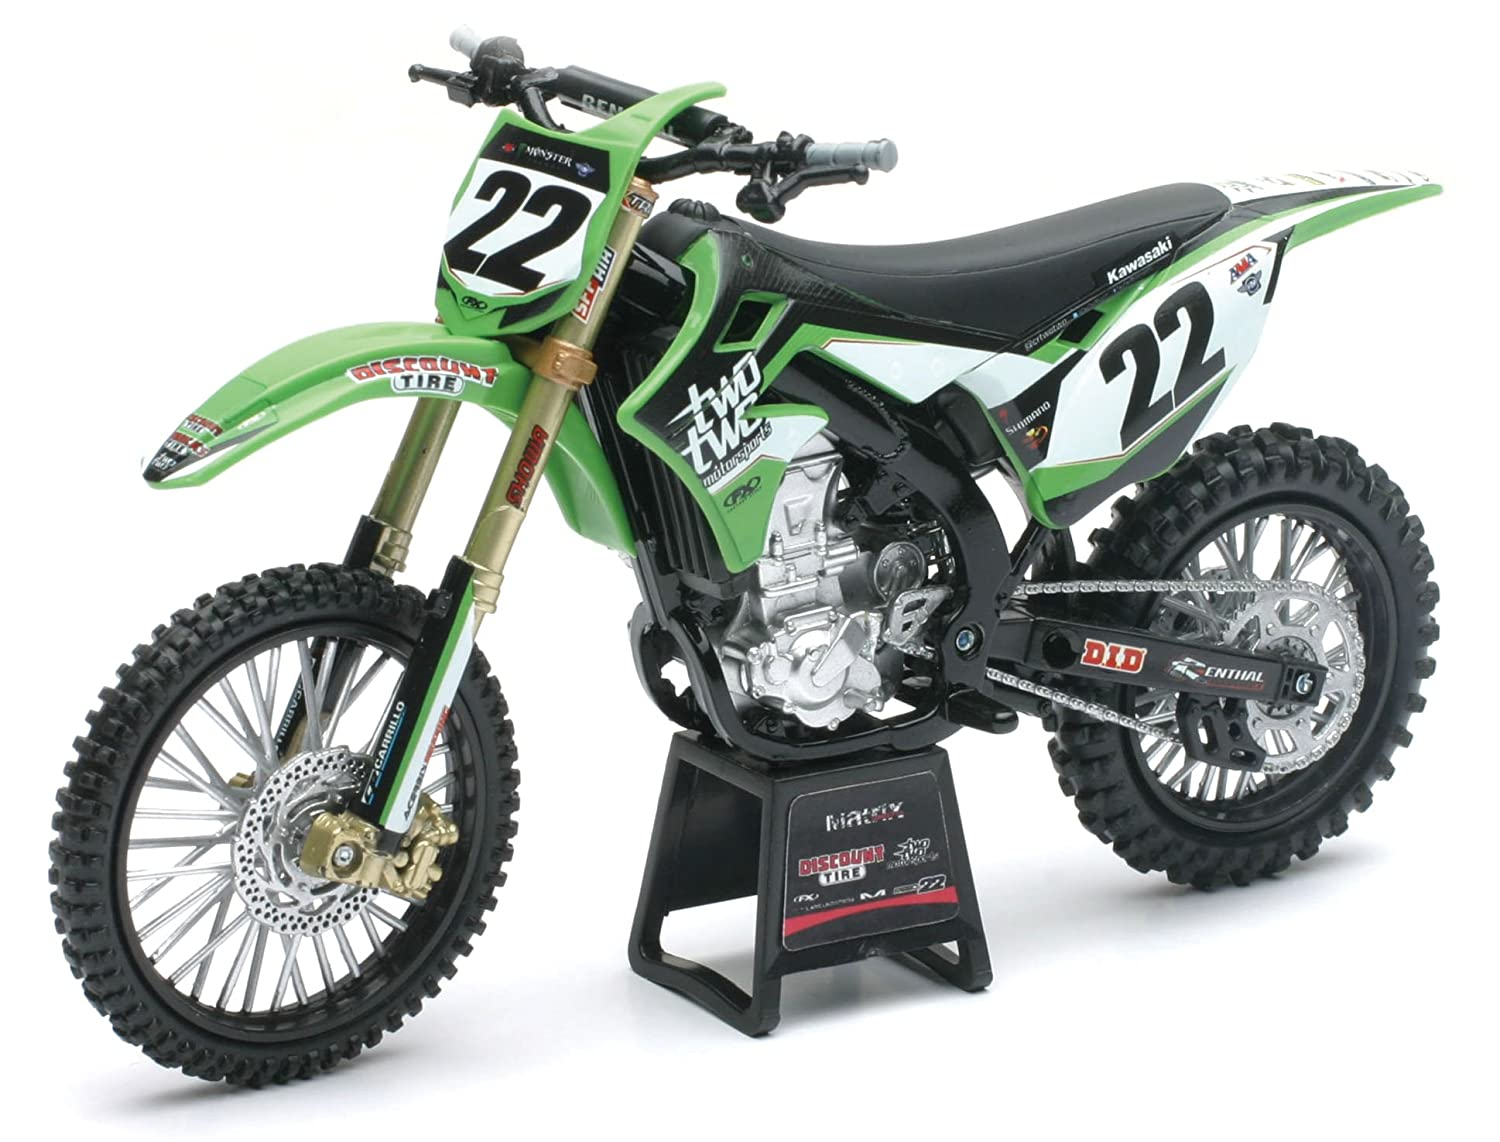 Amazon.com: Kawasaki KX 450F \